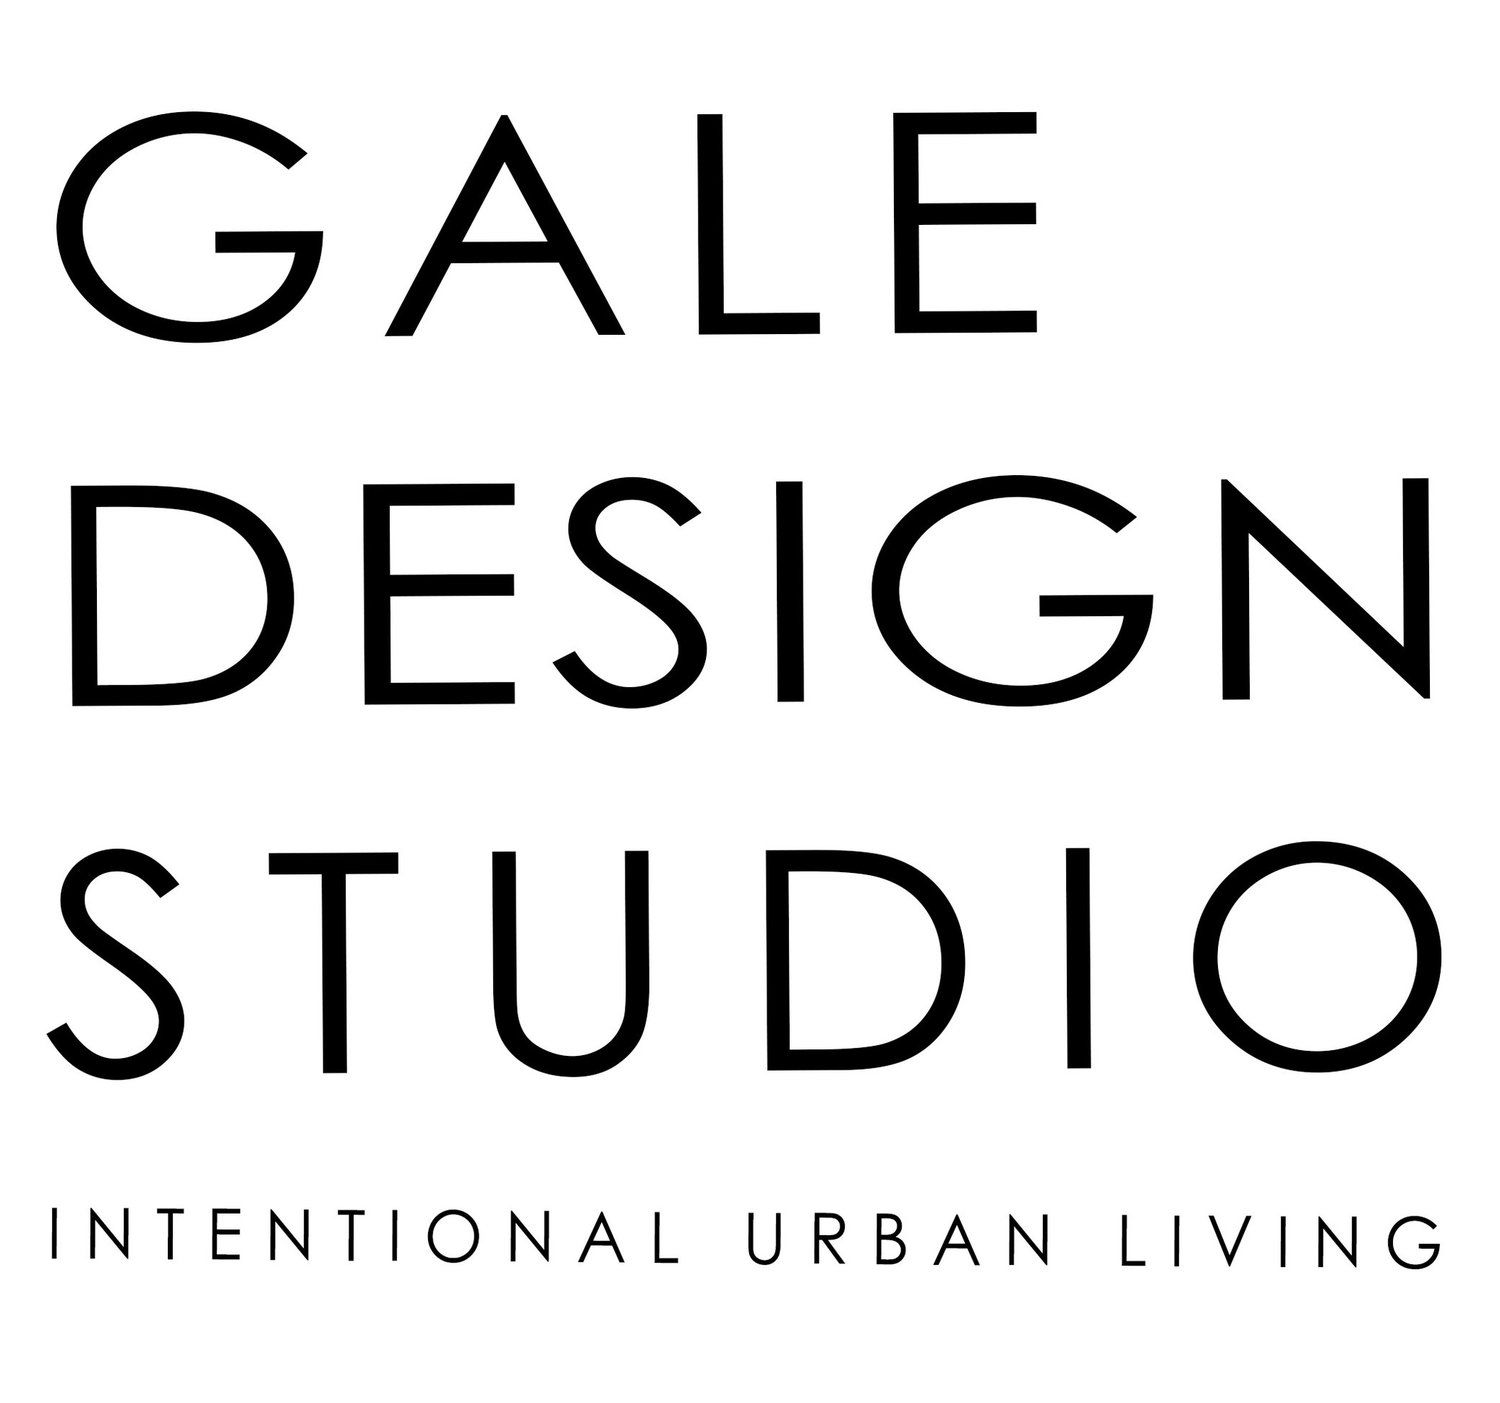 GALE DESIGN STUDIO